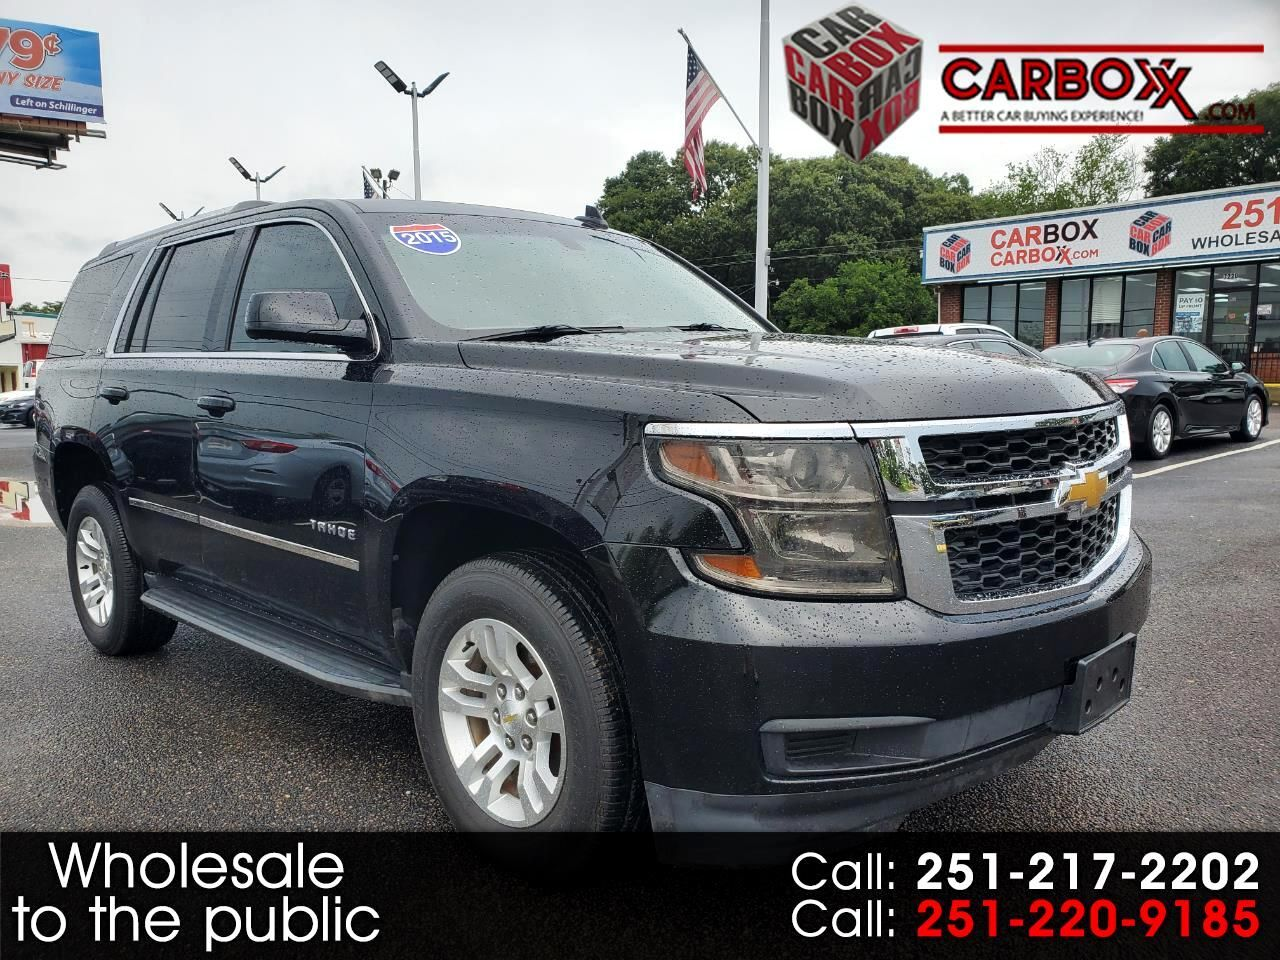 2015 Chevrolet Tahoe 2wd 4dr Ls Chevrolet Tahoe Chevrolet Used Trucks For Sale